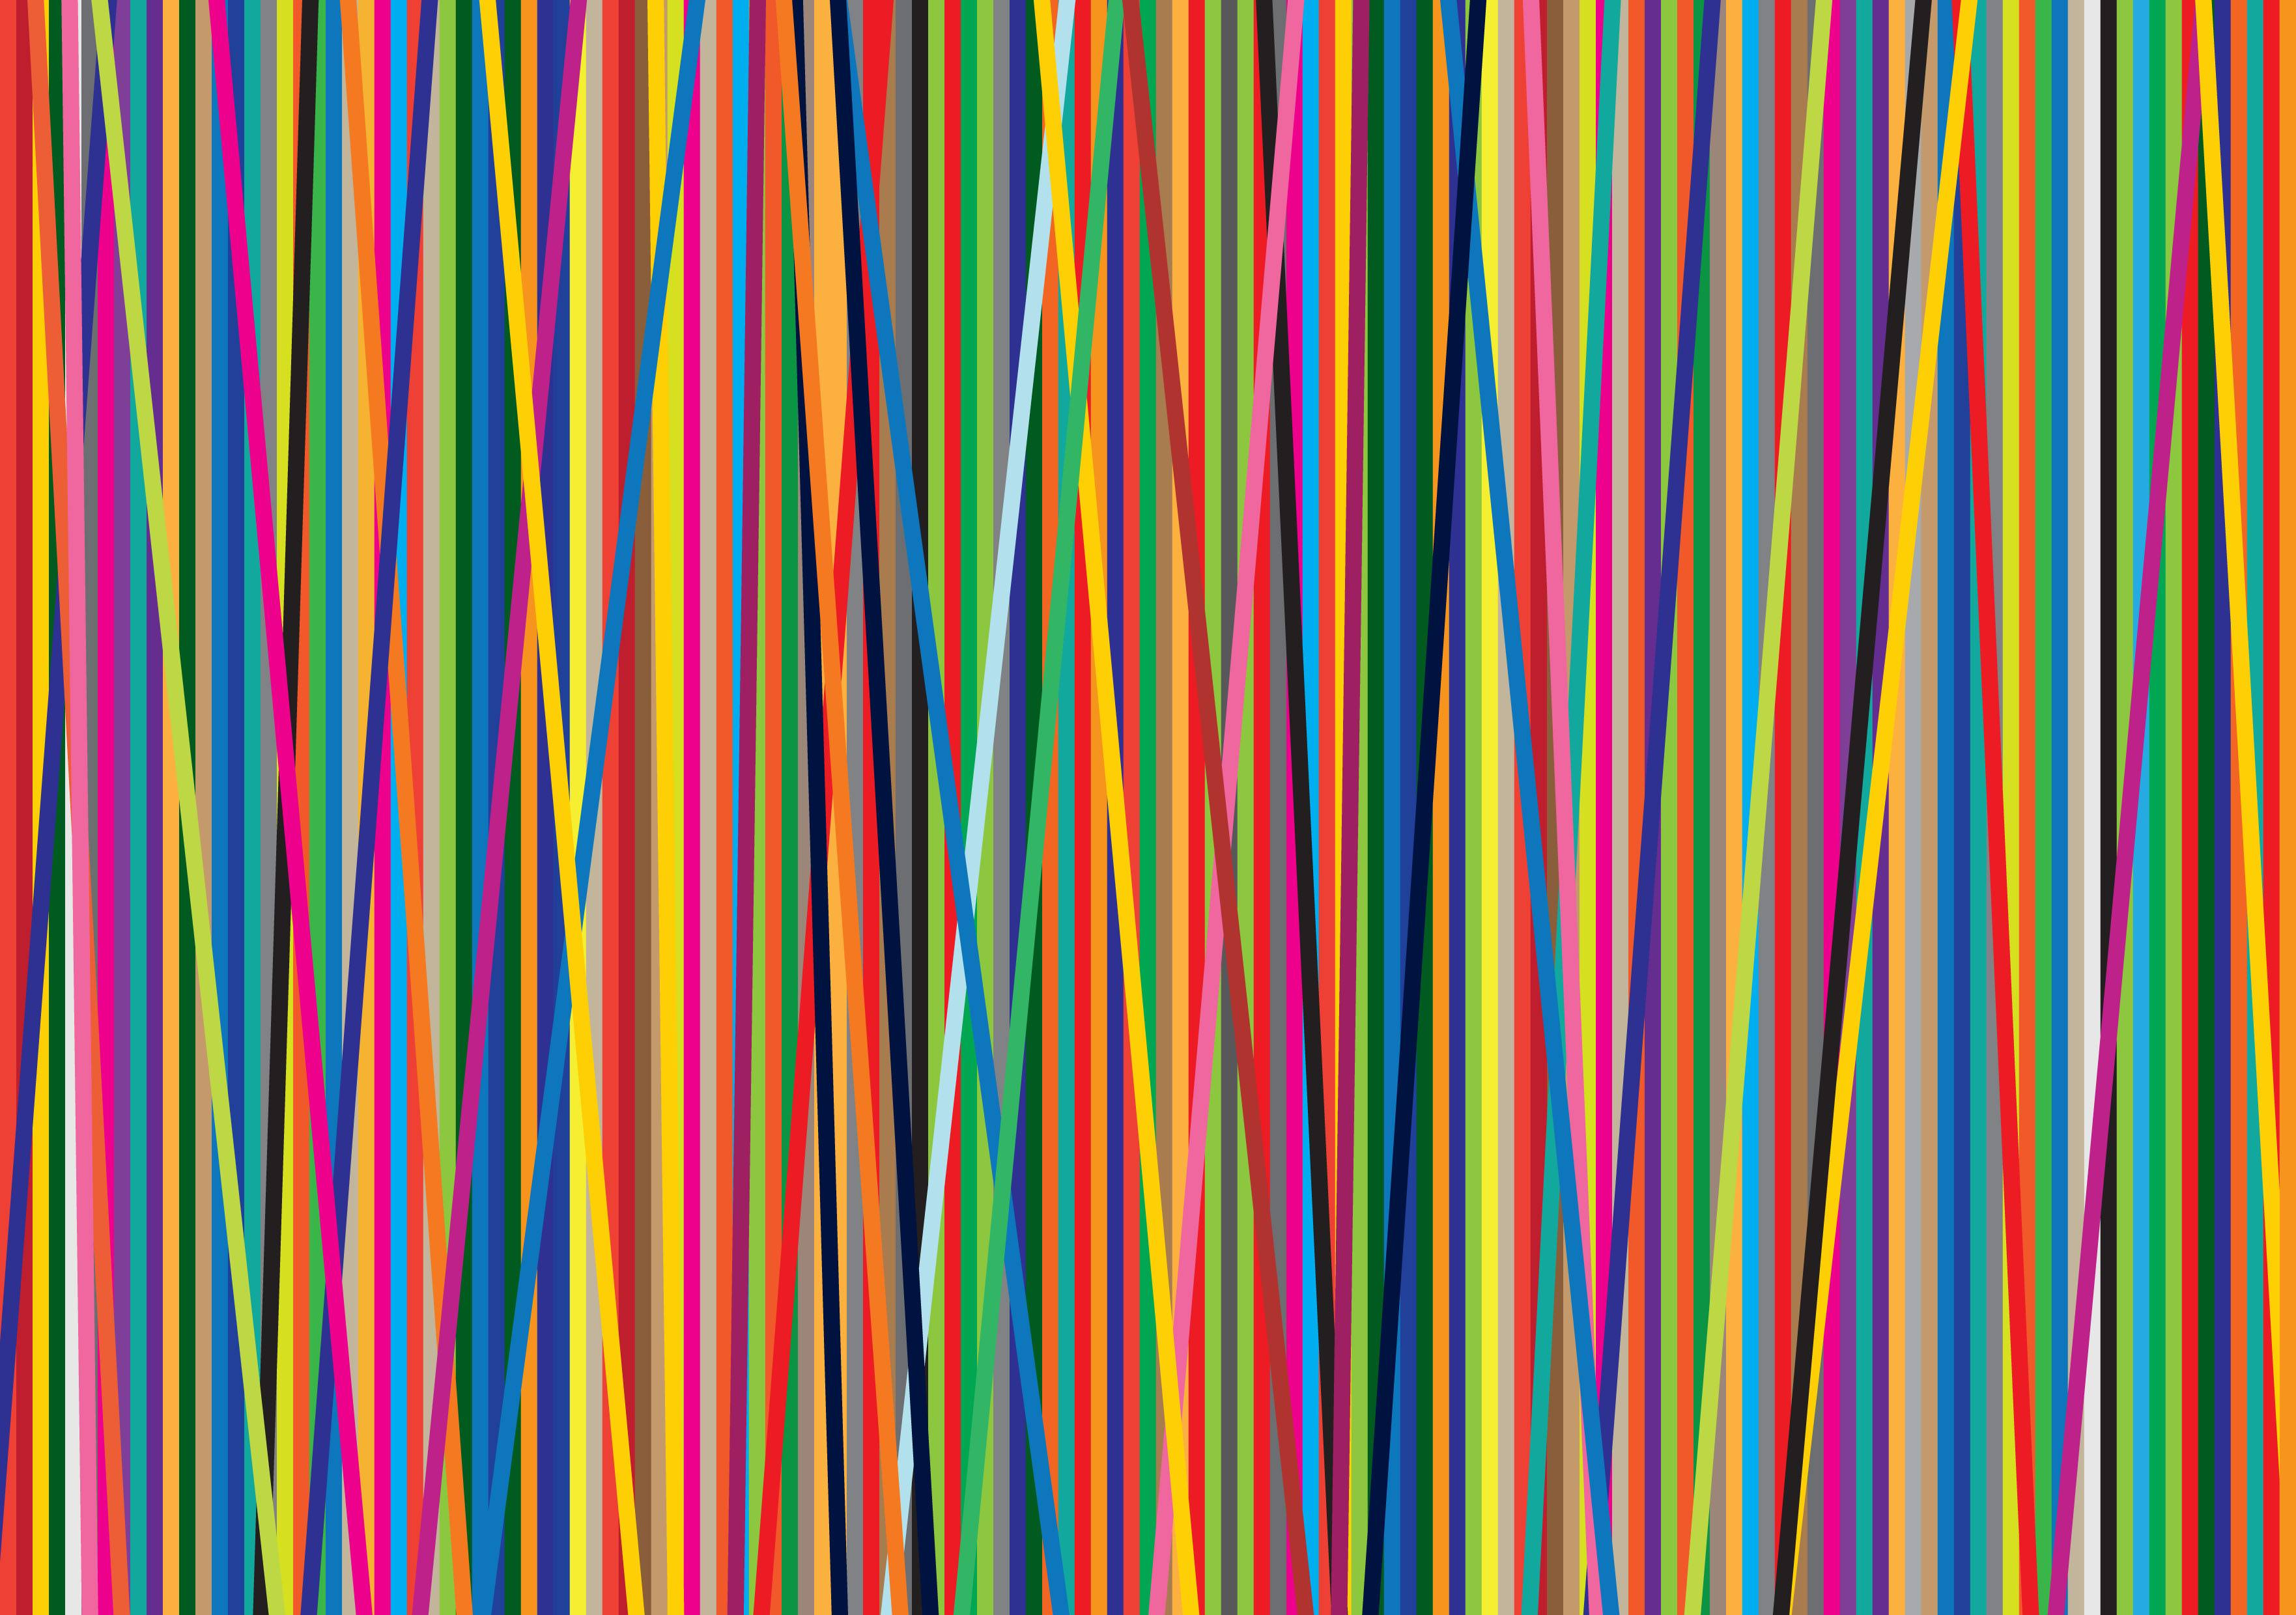 Colorful Stripes Wallpapers 3525x2480